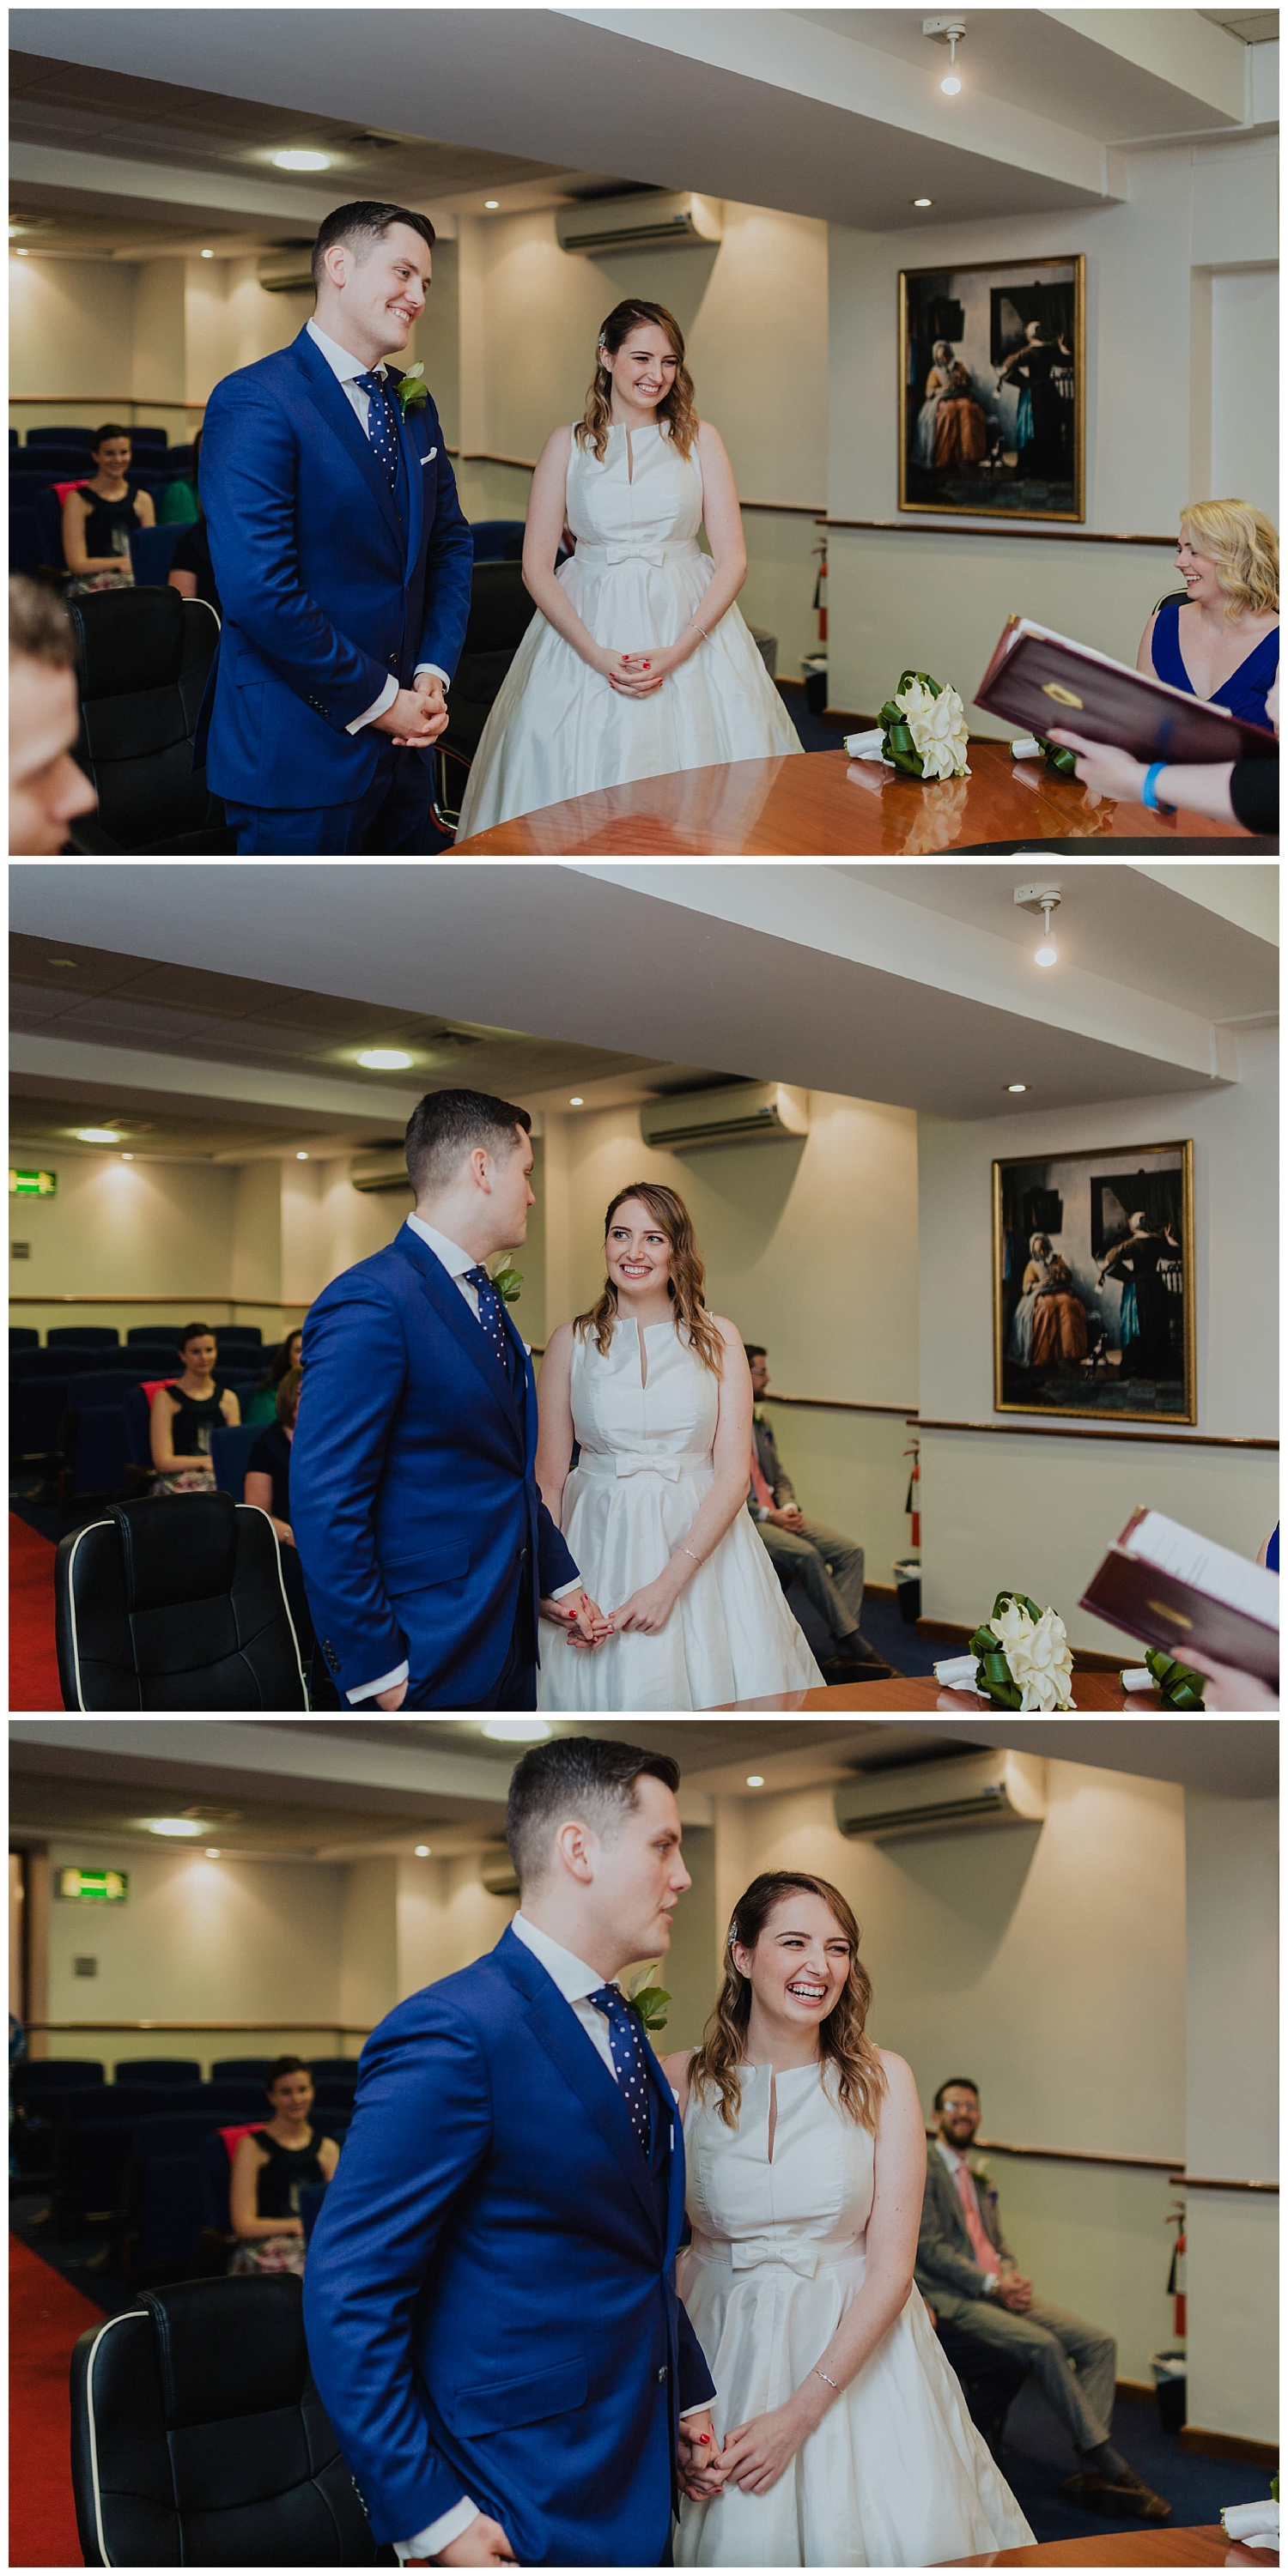 e&a_dublin_city_wedding_livia_figueiredo_339.jpg